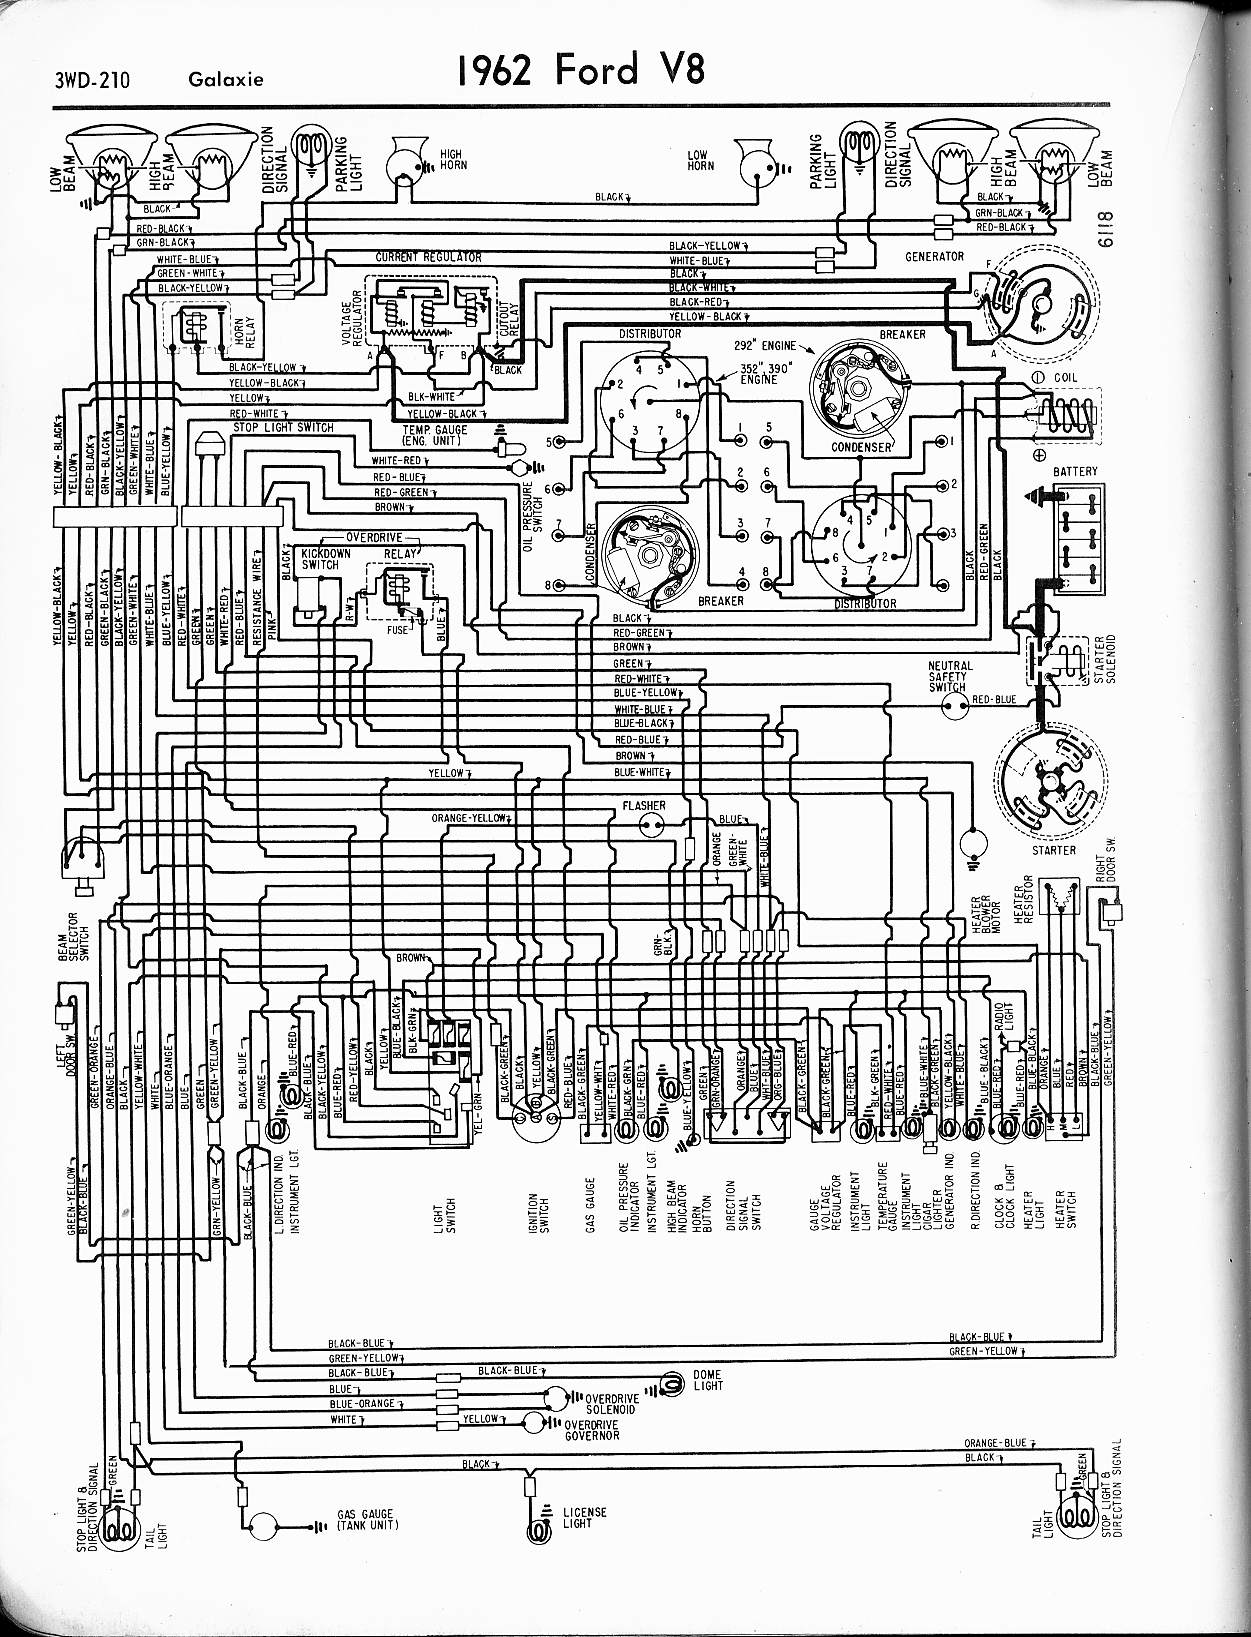 1967 ford galaxie wiring diagram wiring diagram sample rh instinctjax com ford  390 engine parts diagram